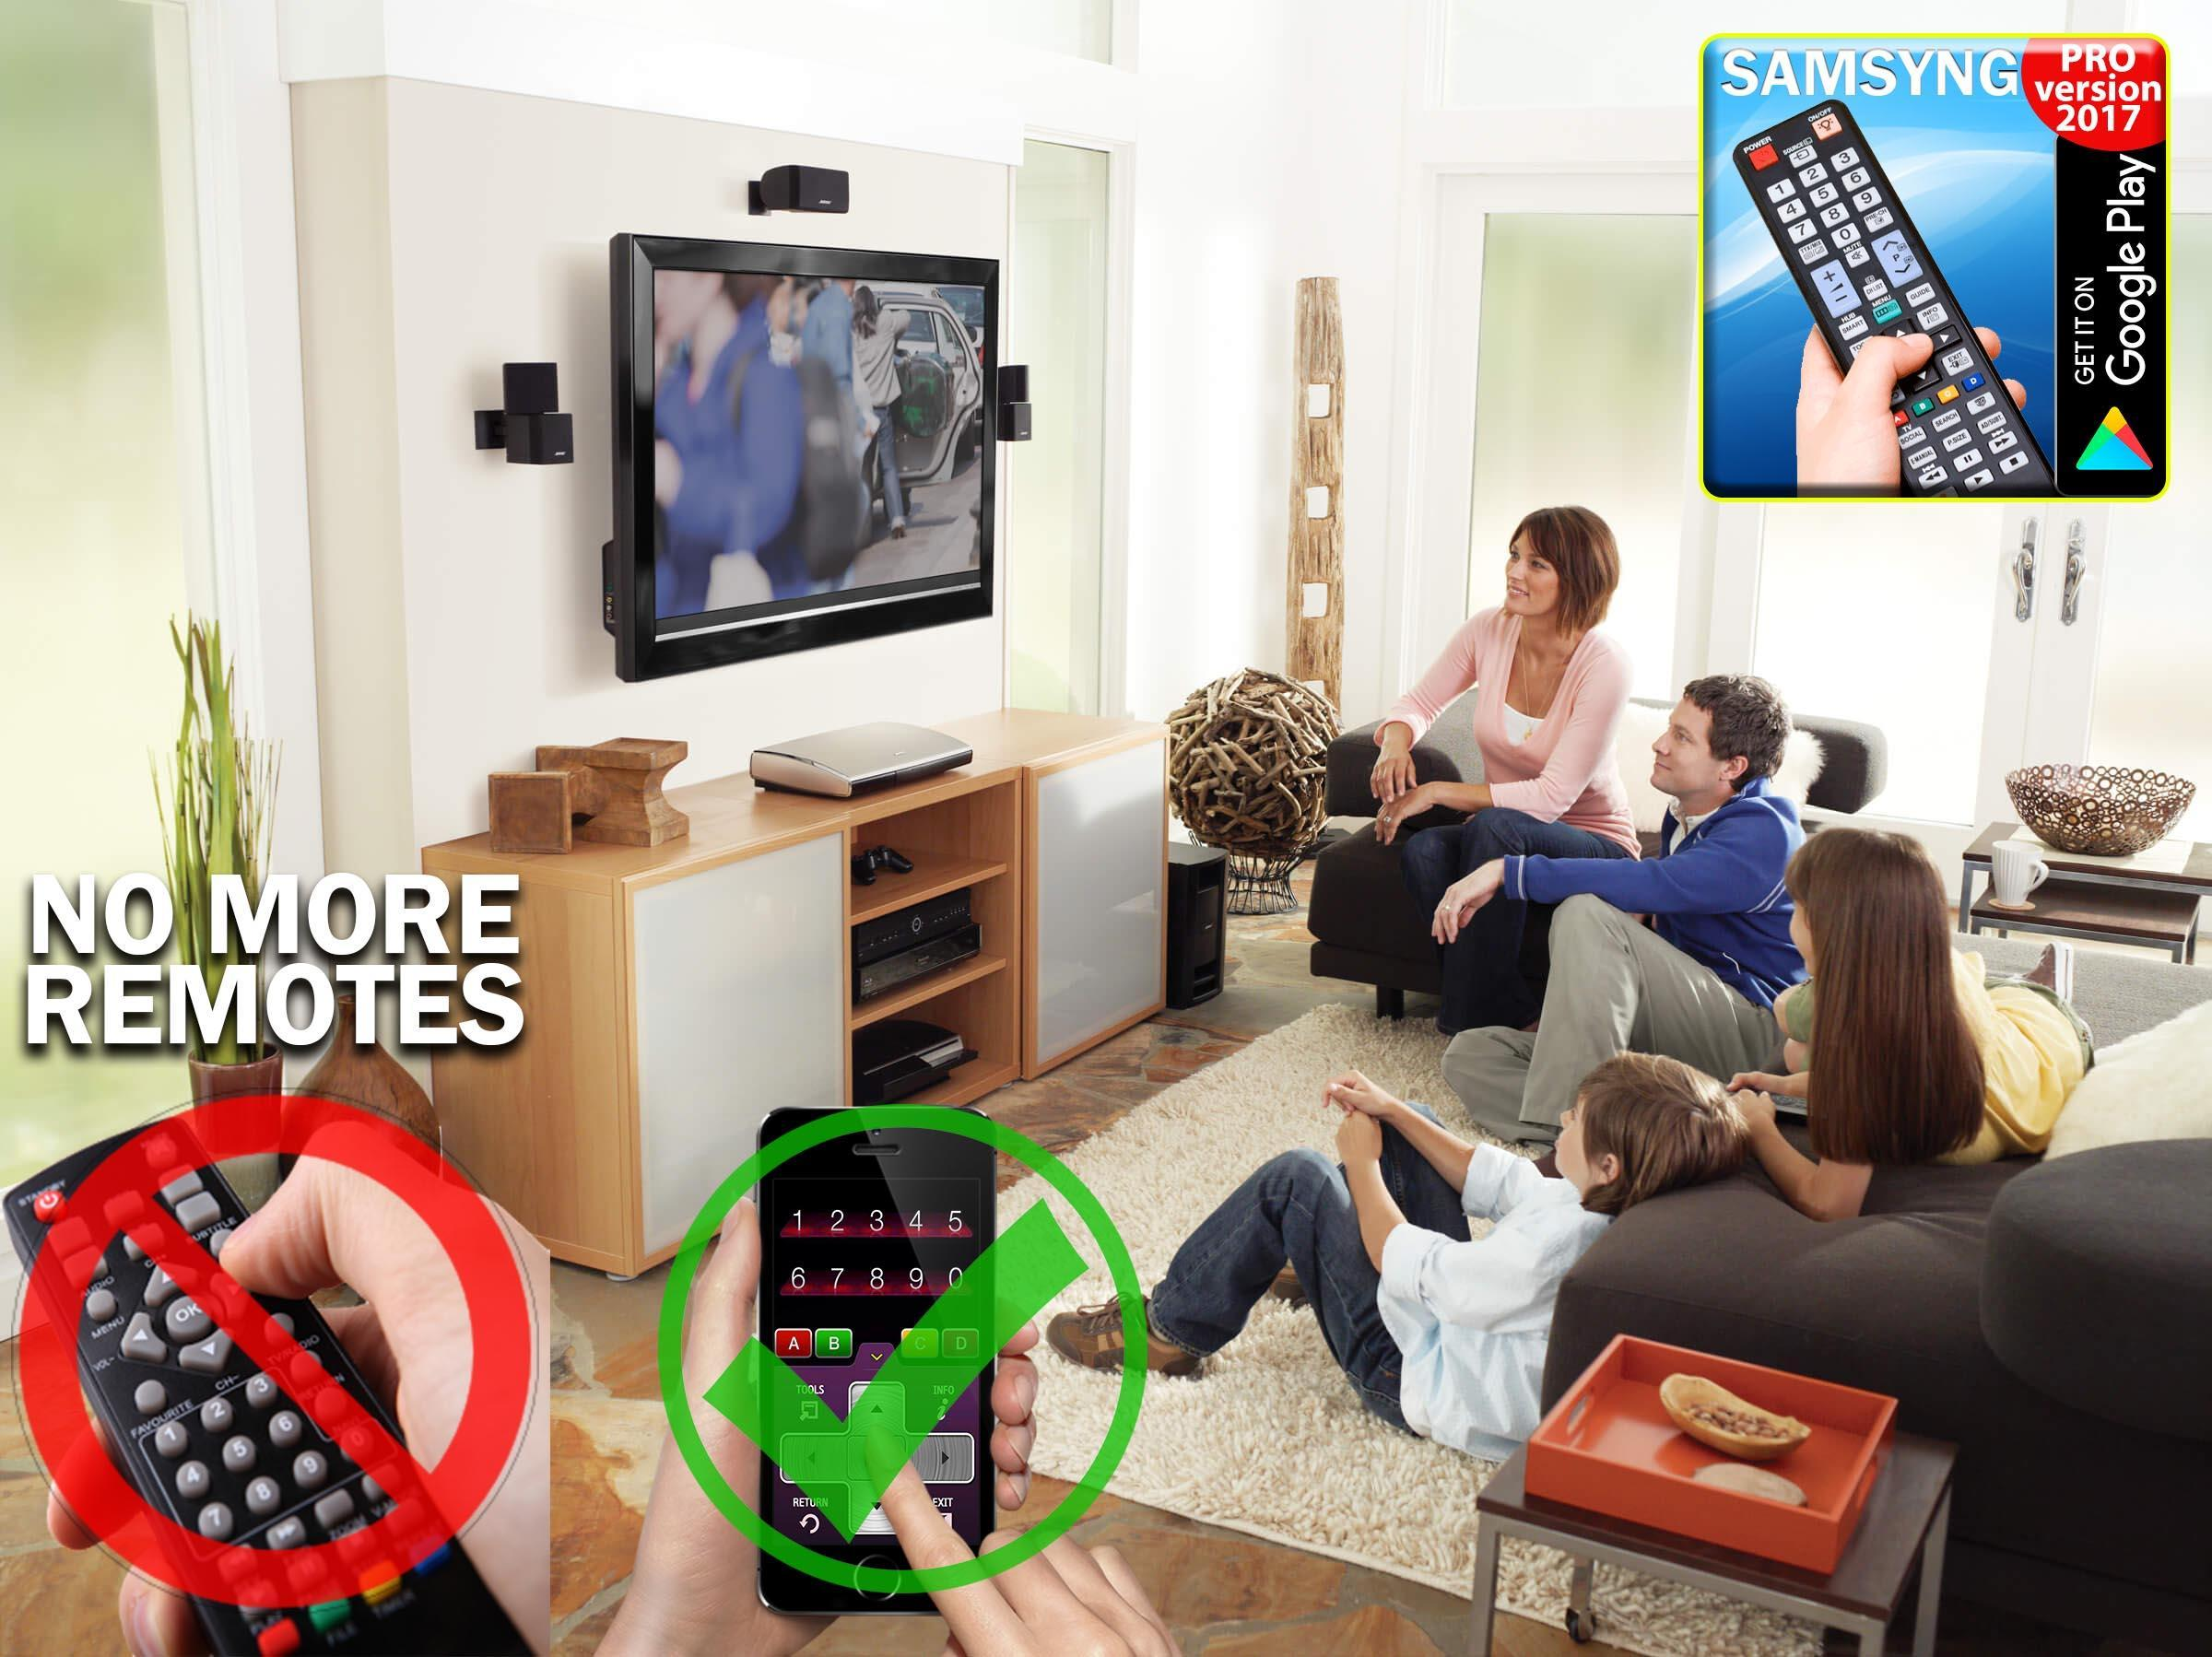 Remote control for samsung TV for Android - APK Download